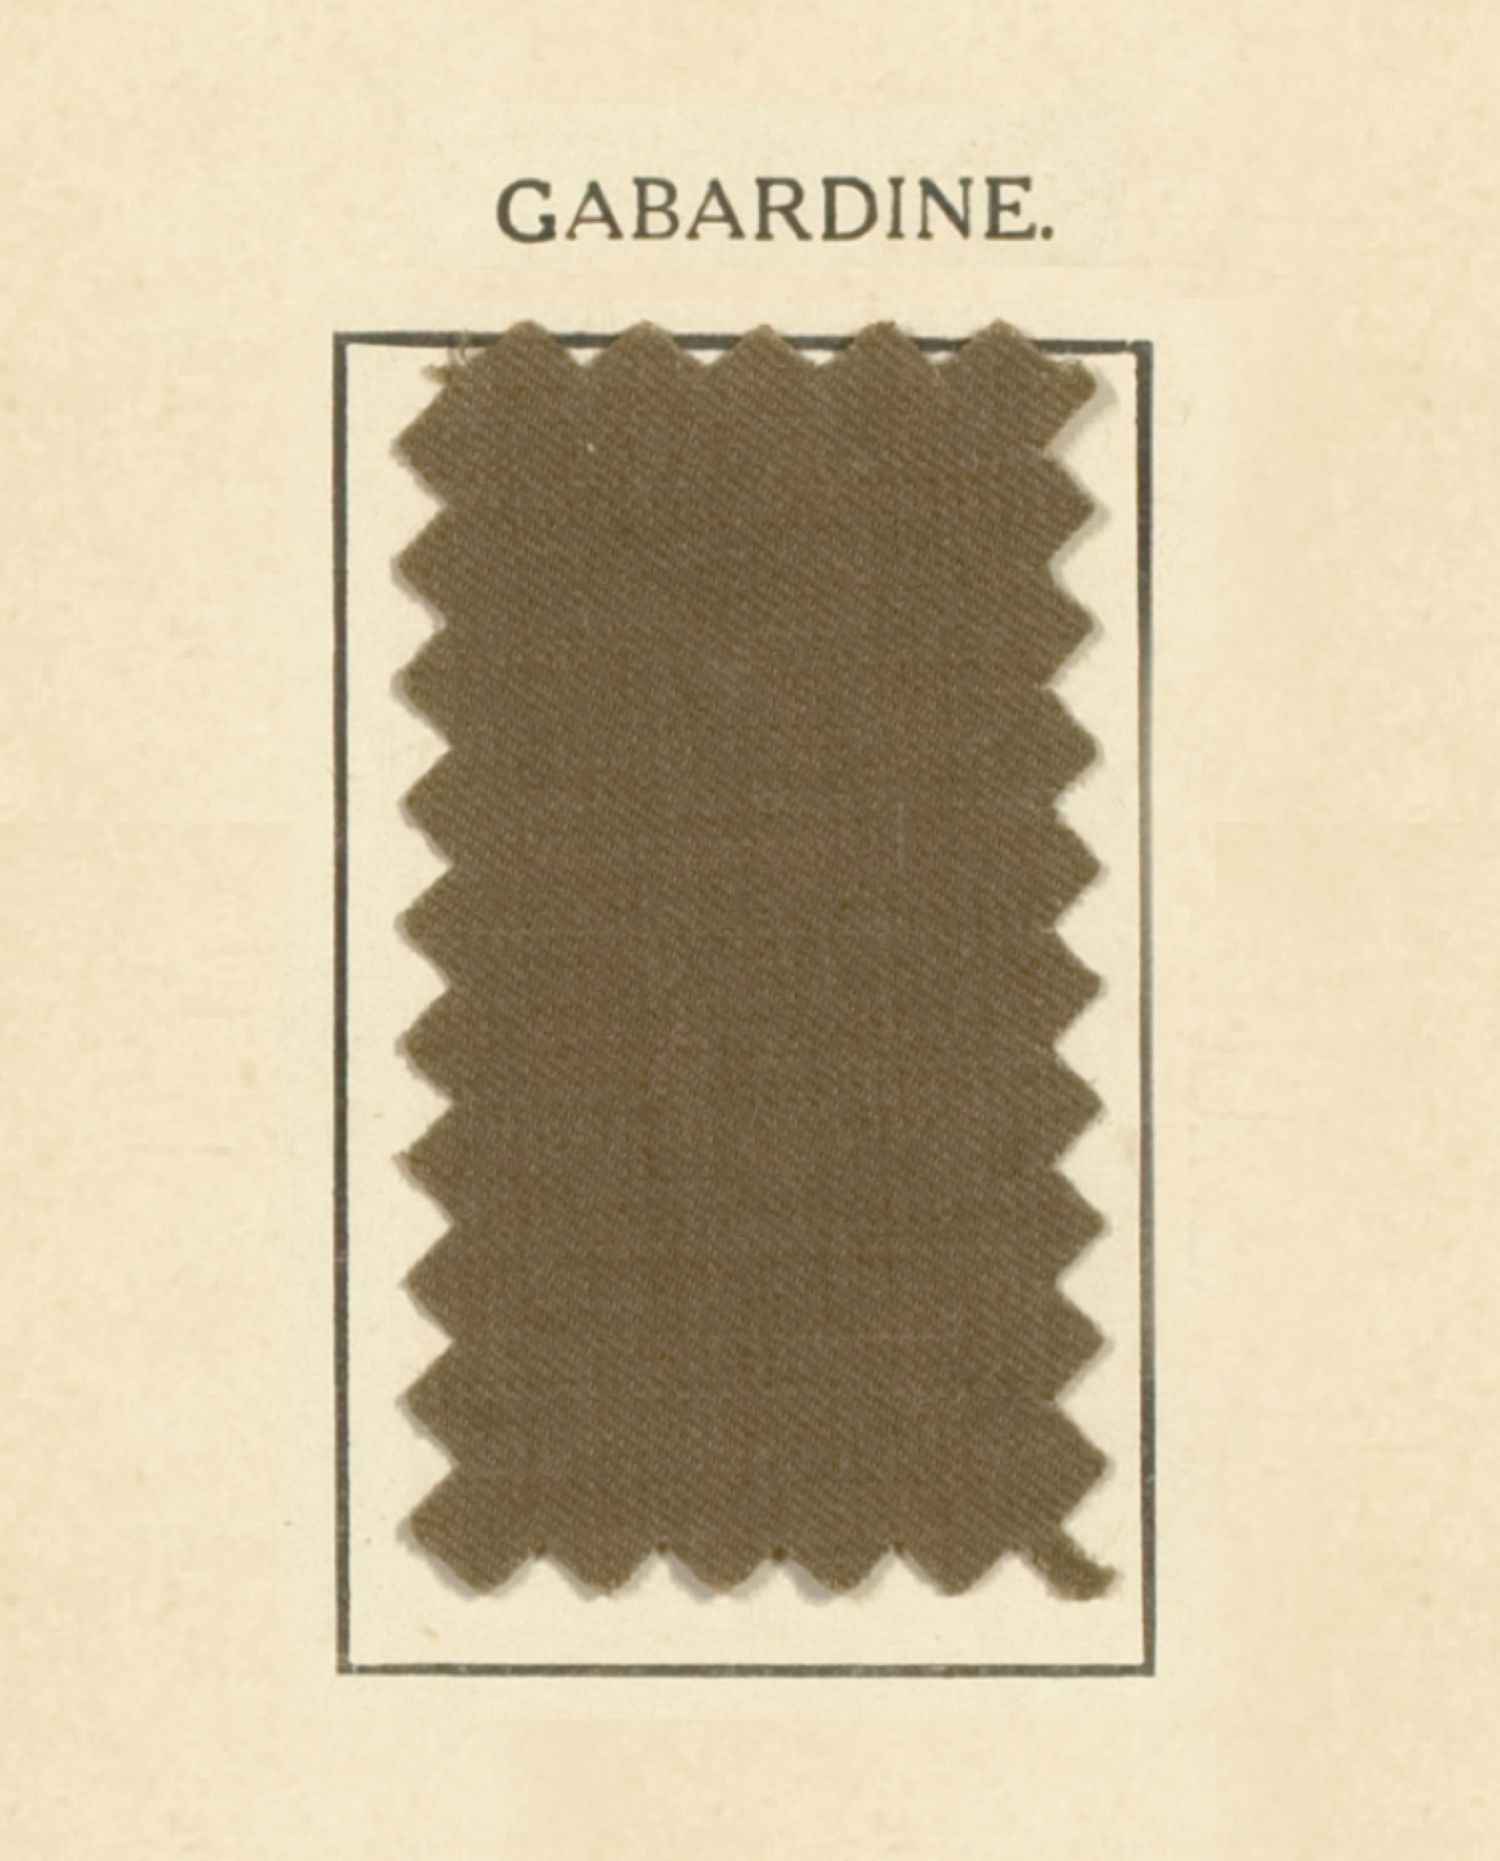 Thomas Burberry invents gabardine – the breathable, weatherproof and hardwearing fabric revolutionising rainwear – which up until then had typically been heavy and uncomfortable to wear. Gabardine was then patented in 1888.